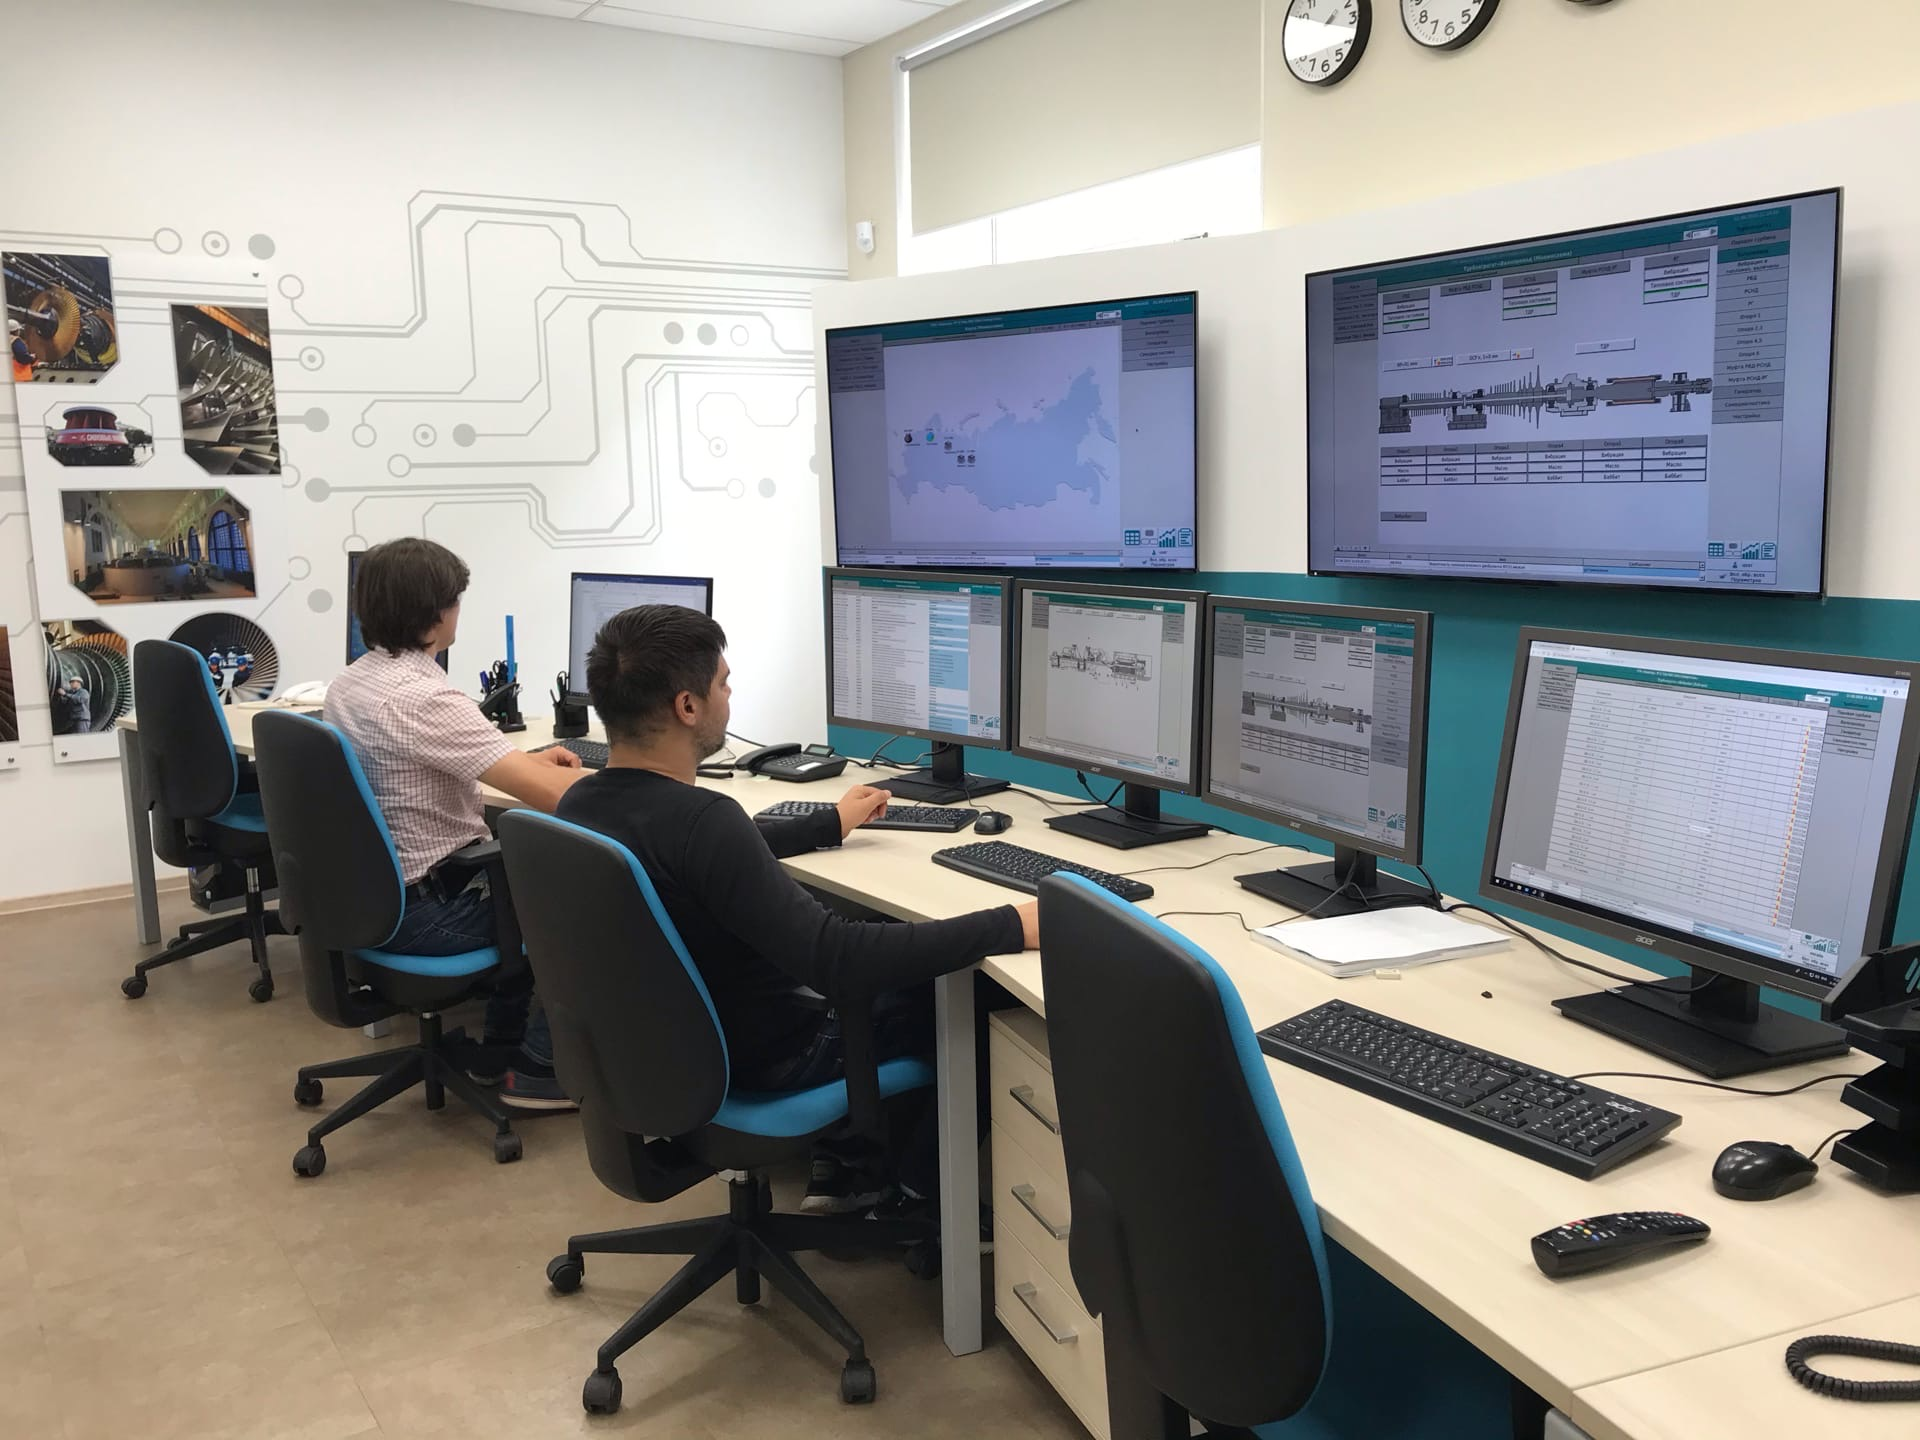 Power Machines have developed their own software and hardware package for the in-process control and diagnostics of power equipment